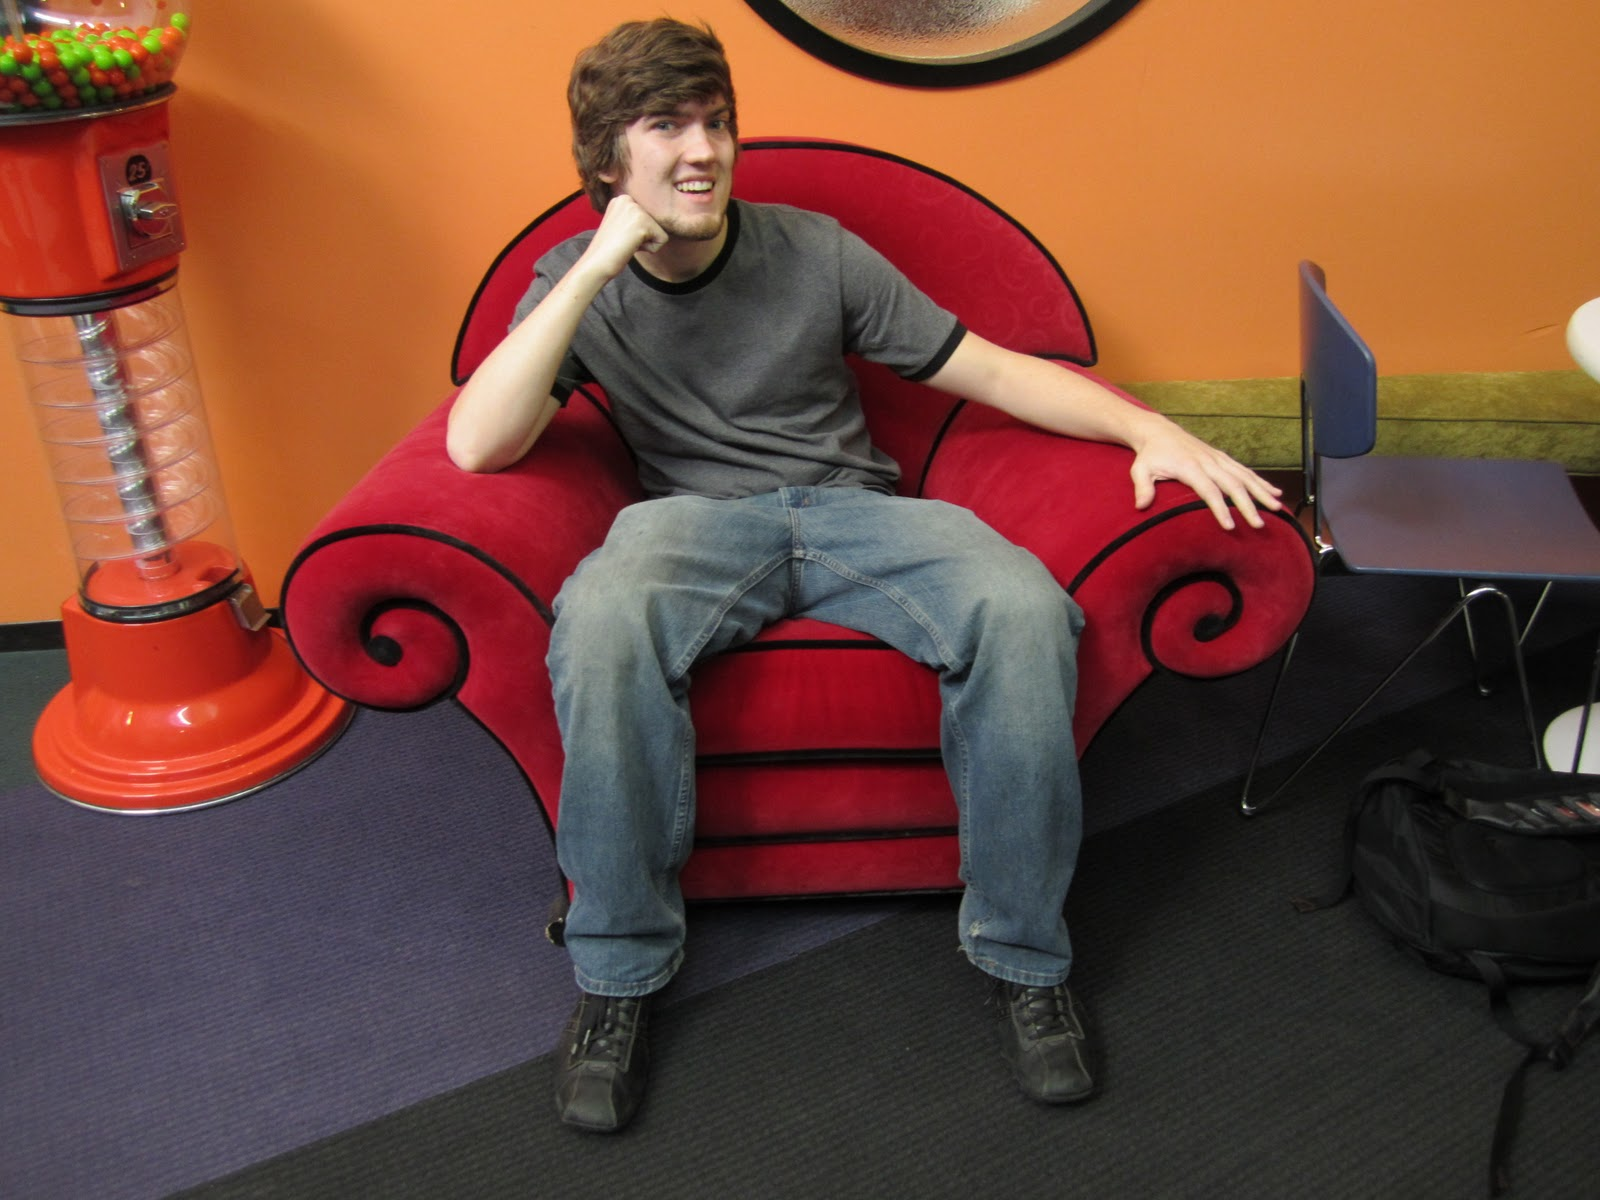 Blues Clues Thinking Chair thinking chair from Blues